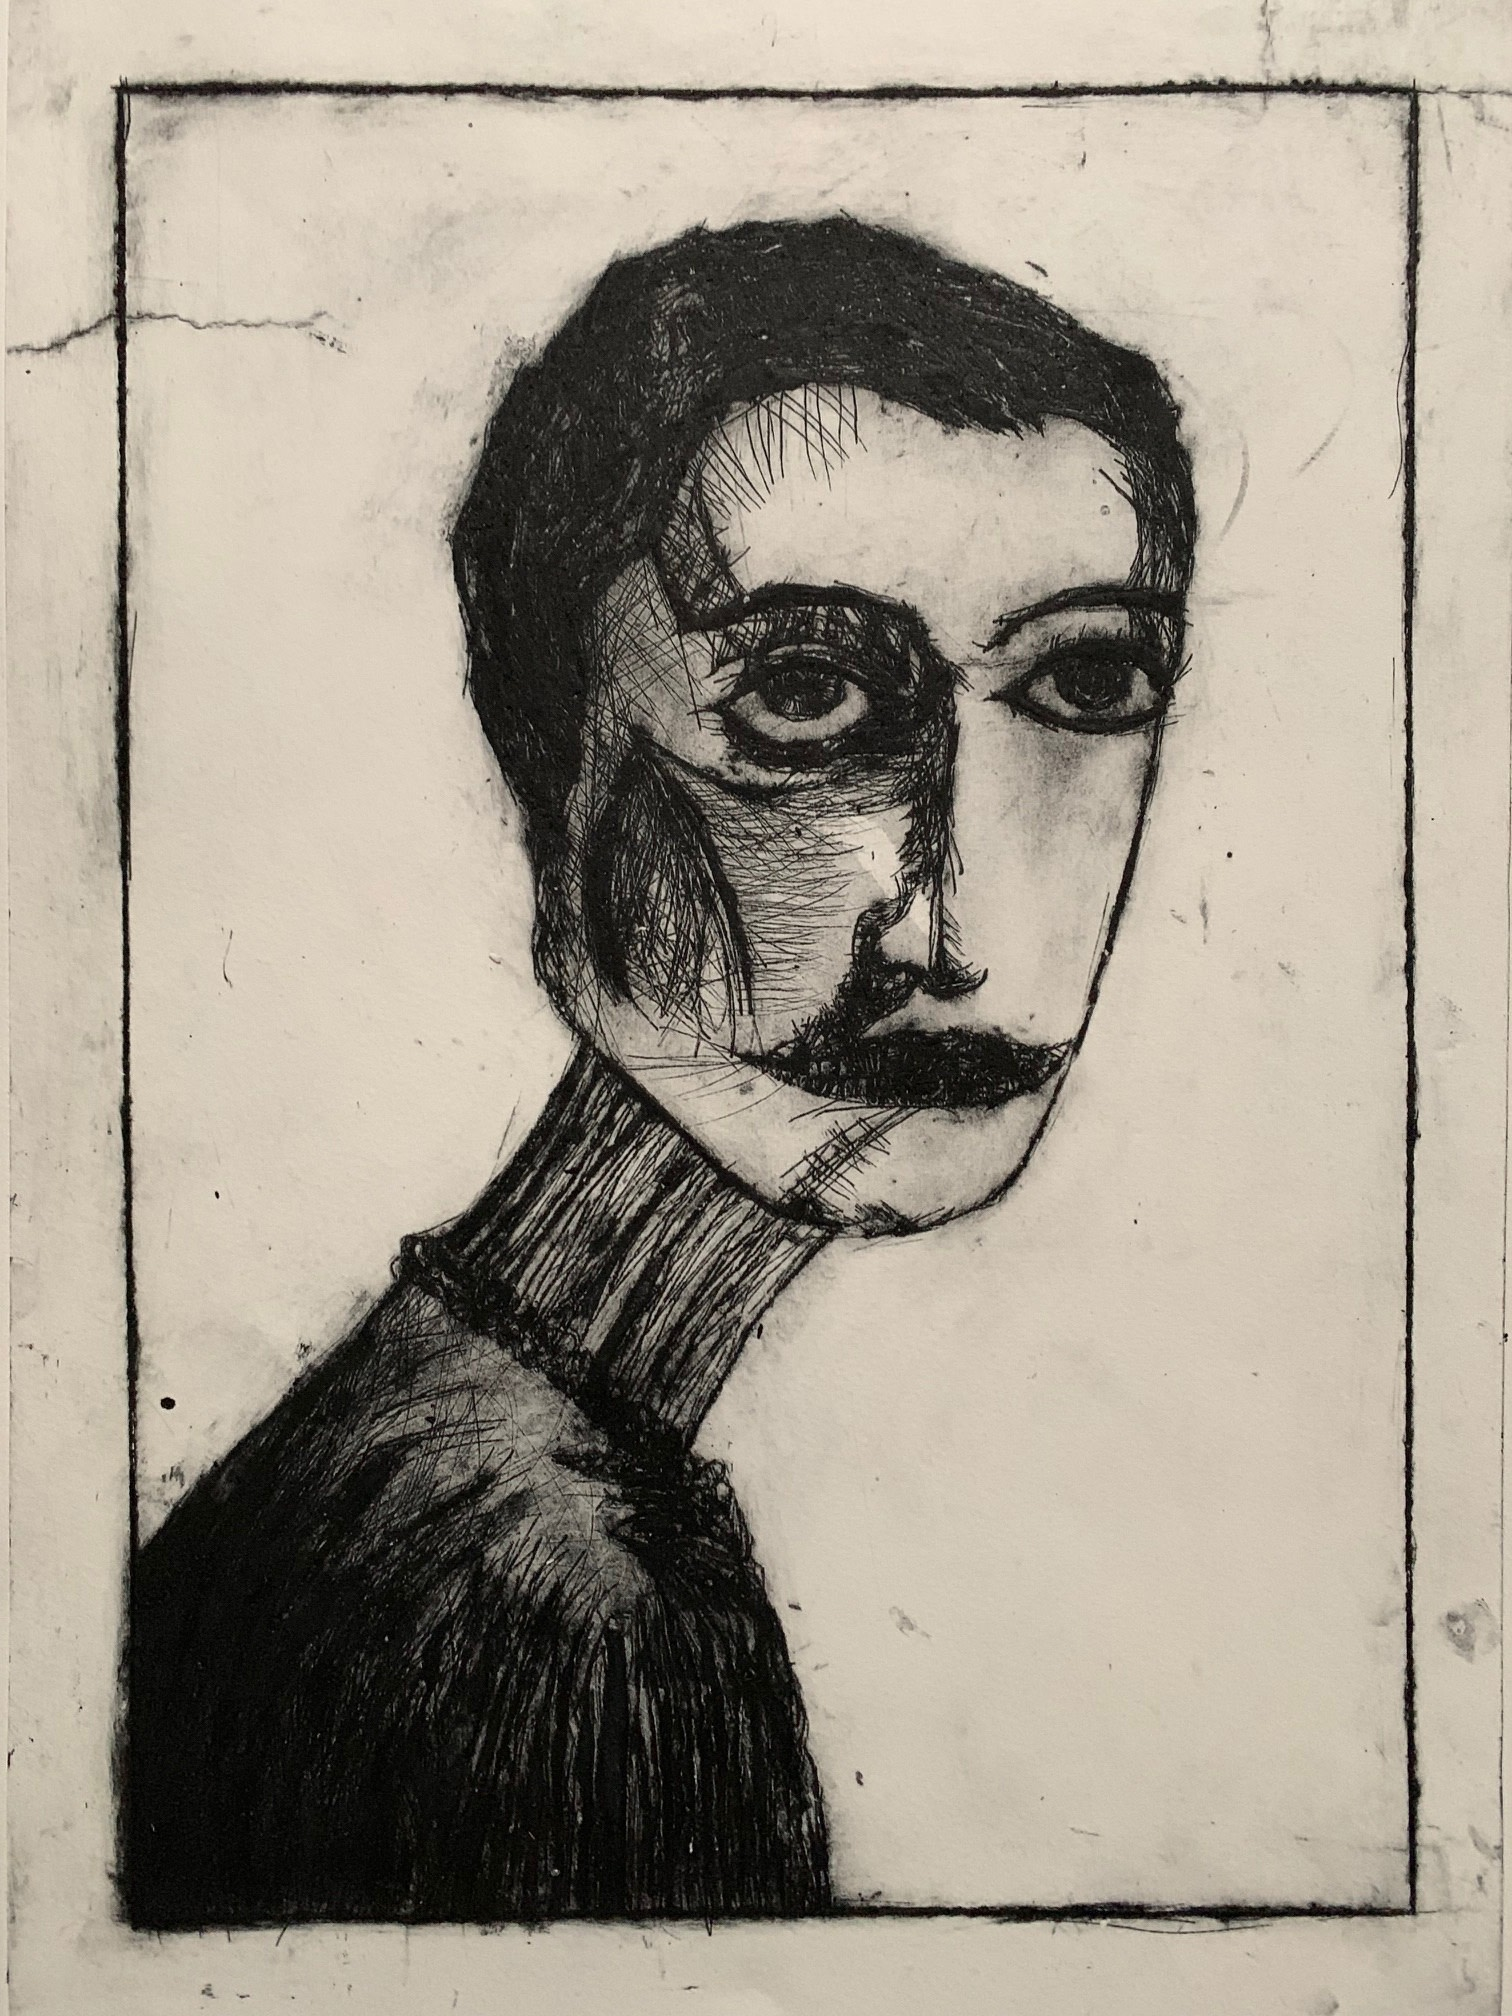 """<span class=""""link fancybox-details-link""""><a href=""""/exhibitions/17/works/image_standalone739/"""">View Detail Page</a></span><p><strong>Derek Mawudoku</strong></p><p>Before</p><p>drypoint, ed of 15</p><p>87 x 88cm</p><p>£440 framed</p><p>£420 unframed</p>"""